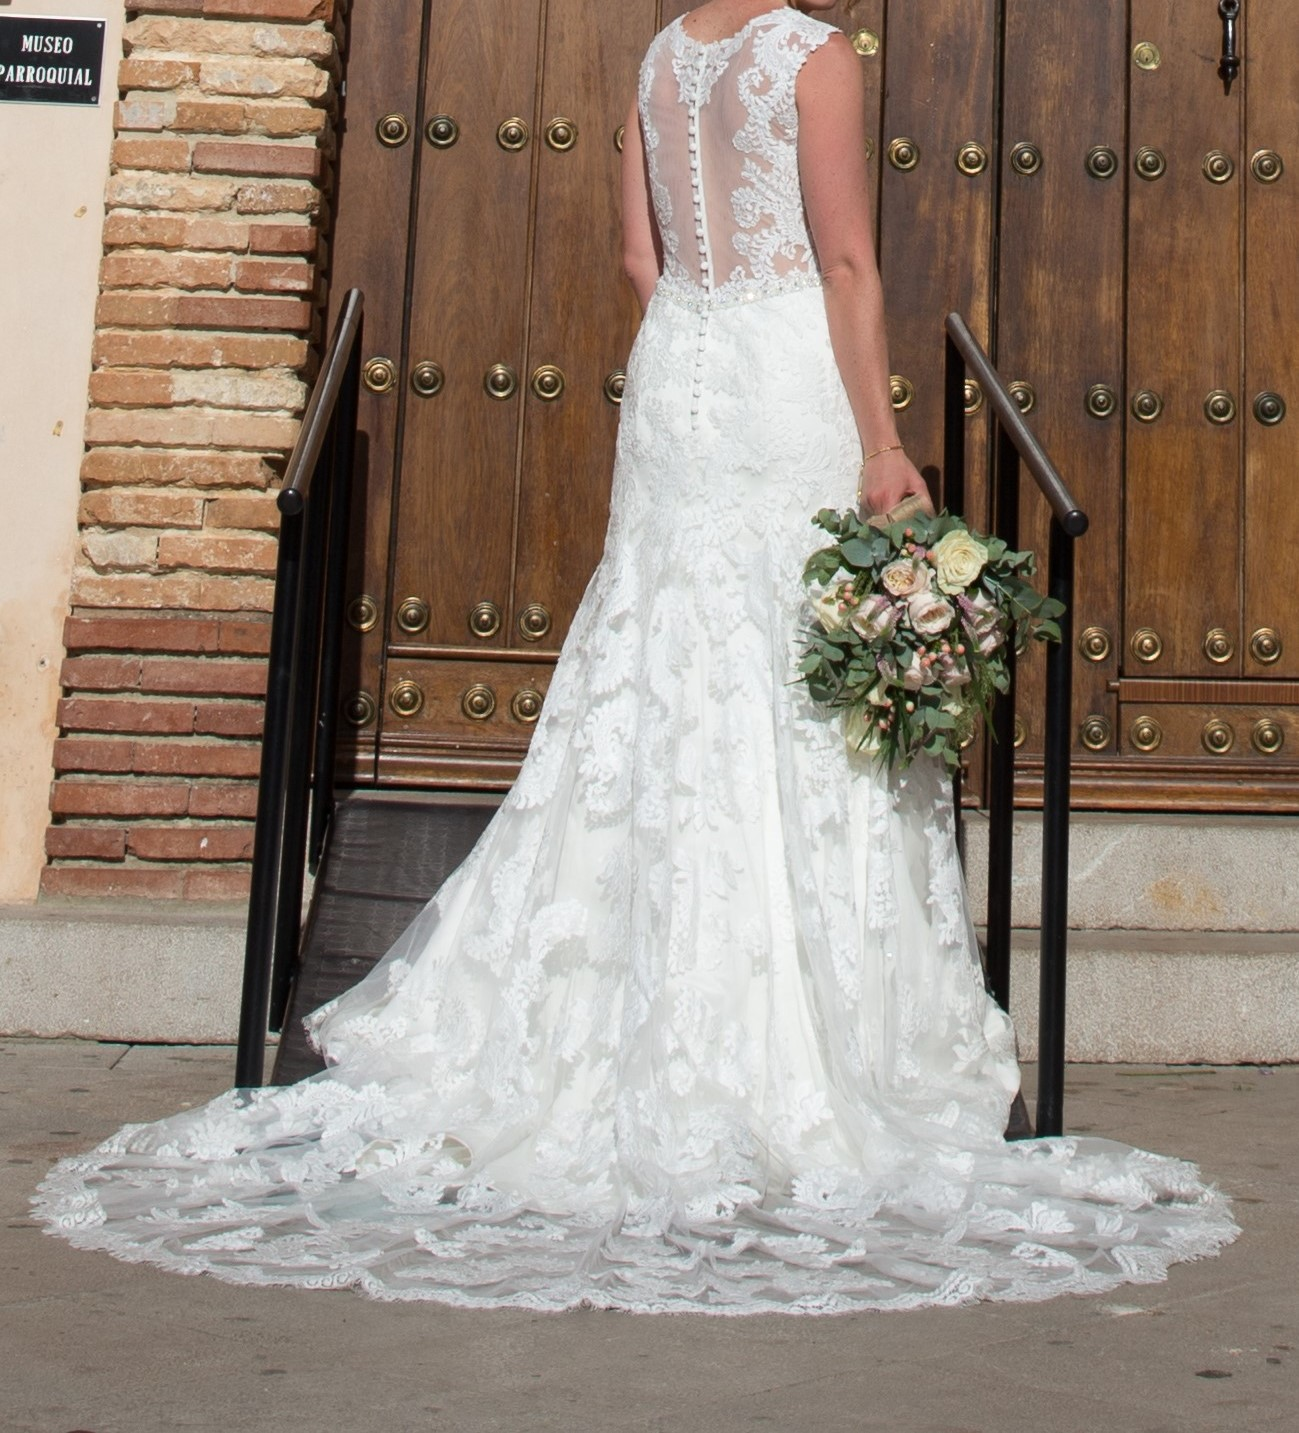 Venus Bridal VE8236 Second Hand Wedding Dress On Sale 55